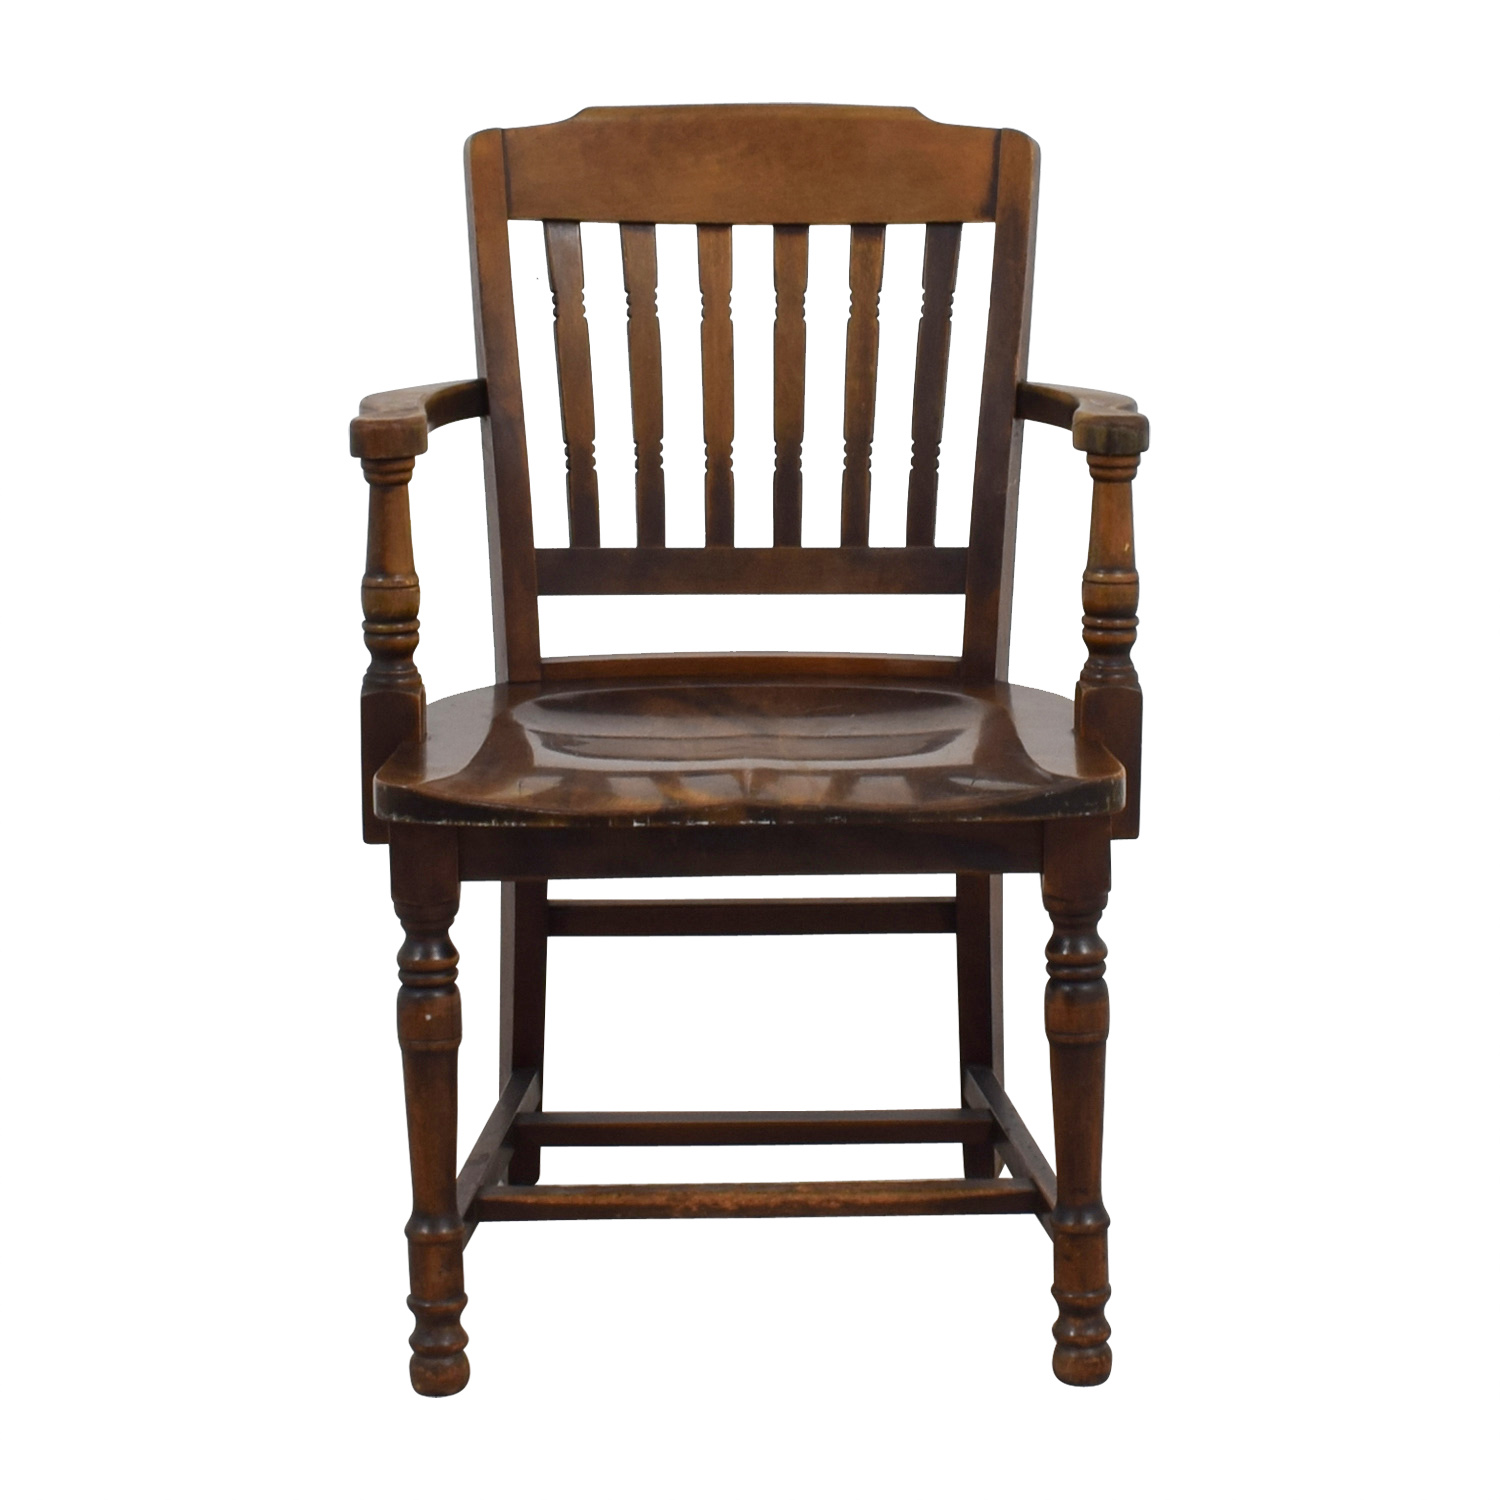 shop Antique Wood Spindel Chair Chairs